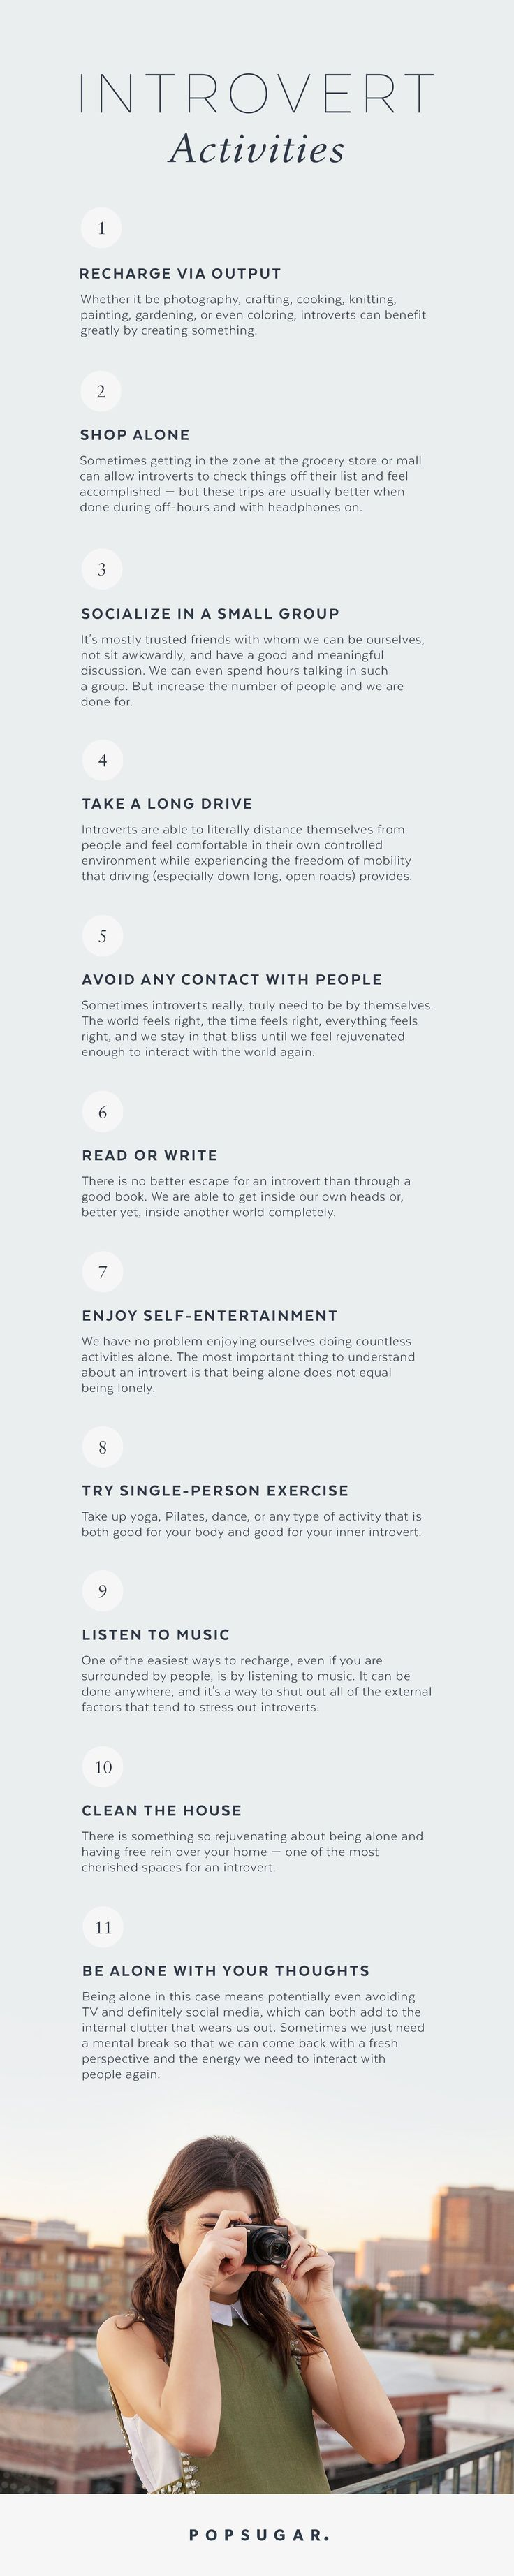 If you're a hardcore introvert like me, these tips may really help you figure…